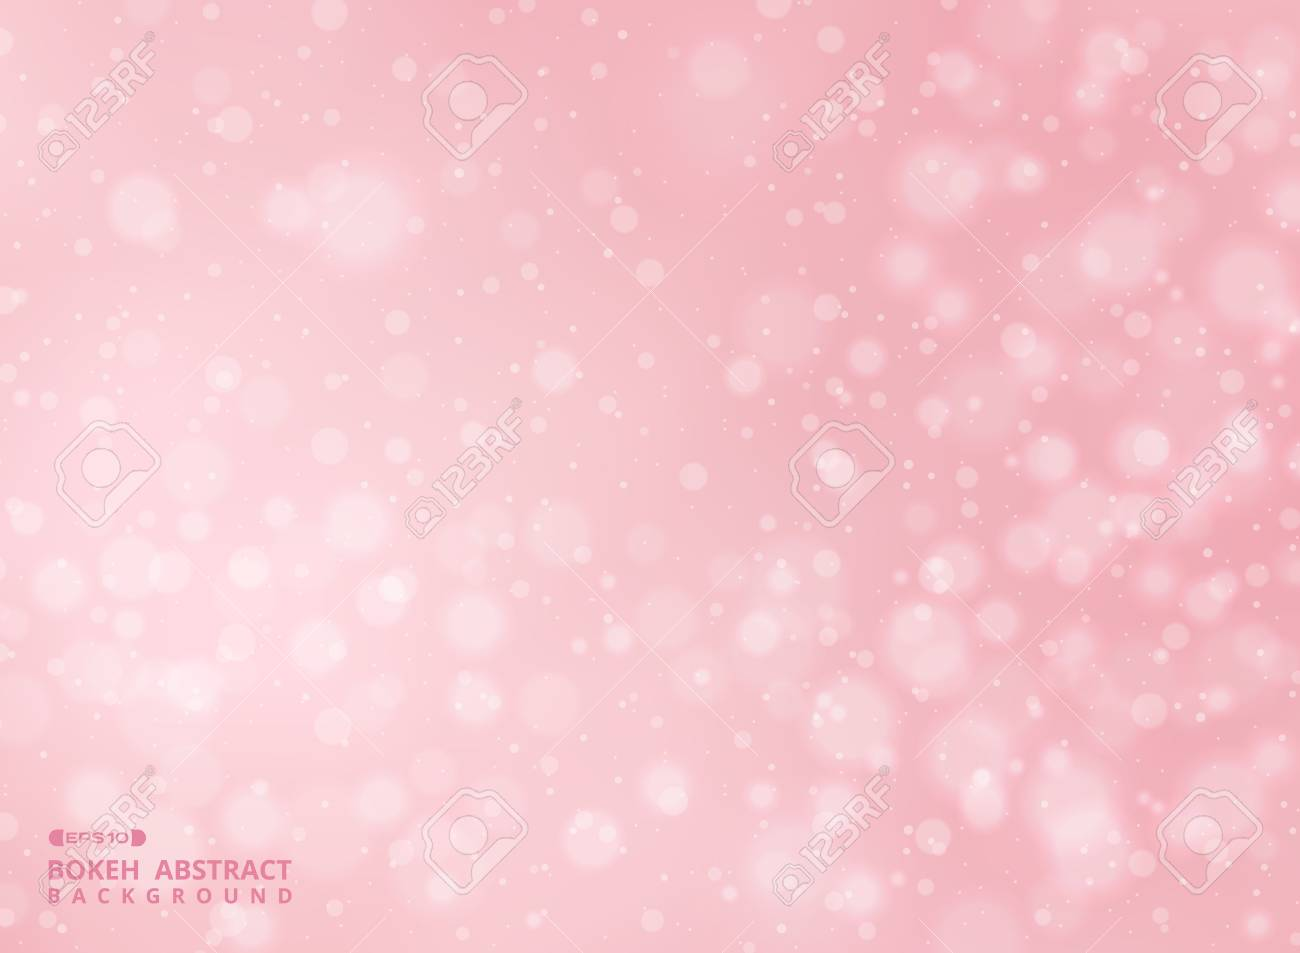 Gradient pink color background with abstraction of bokeh pattern, illustration vector eps10 - 126408512